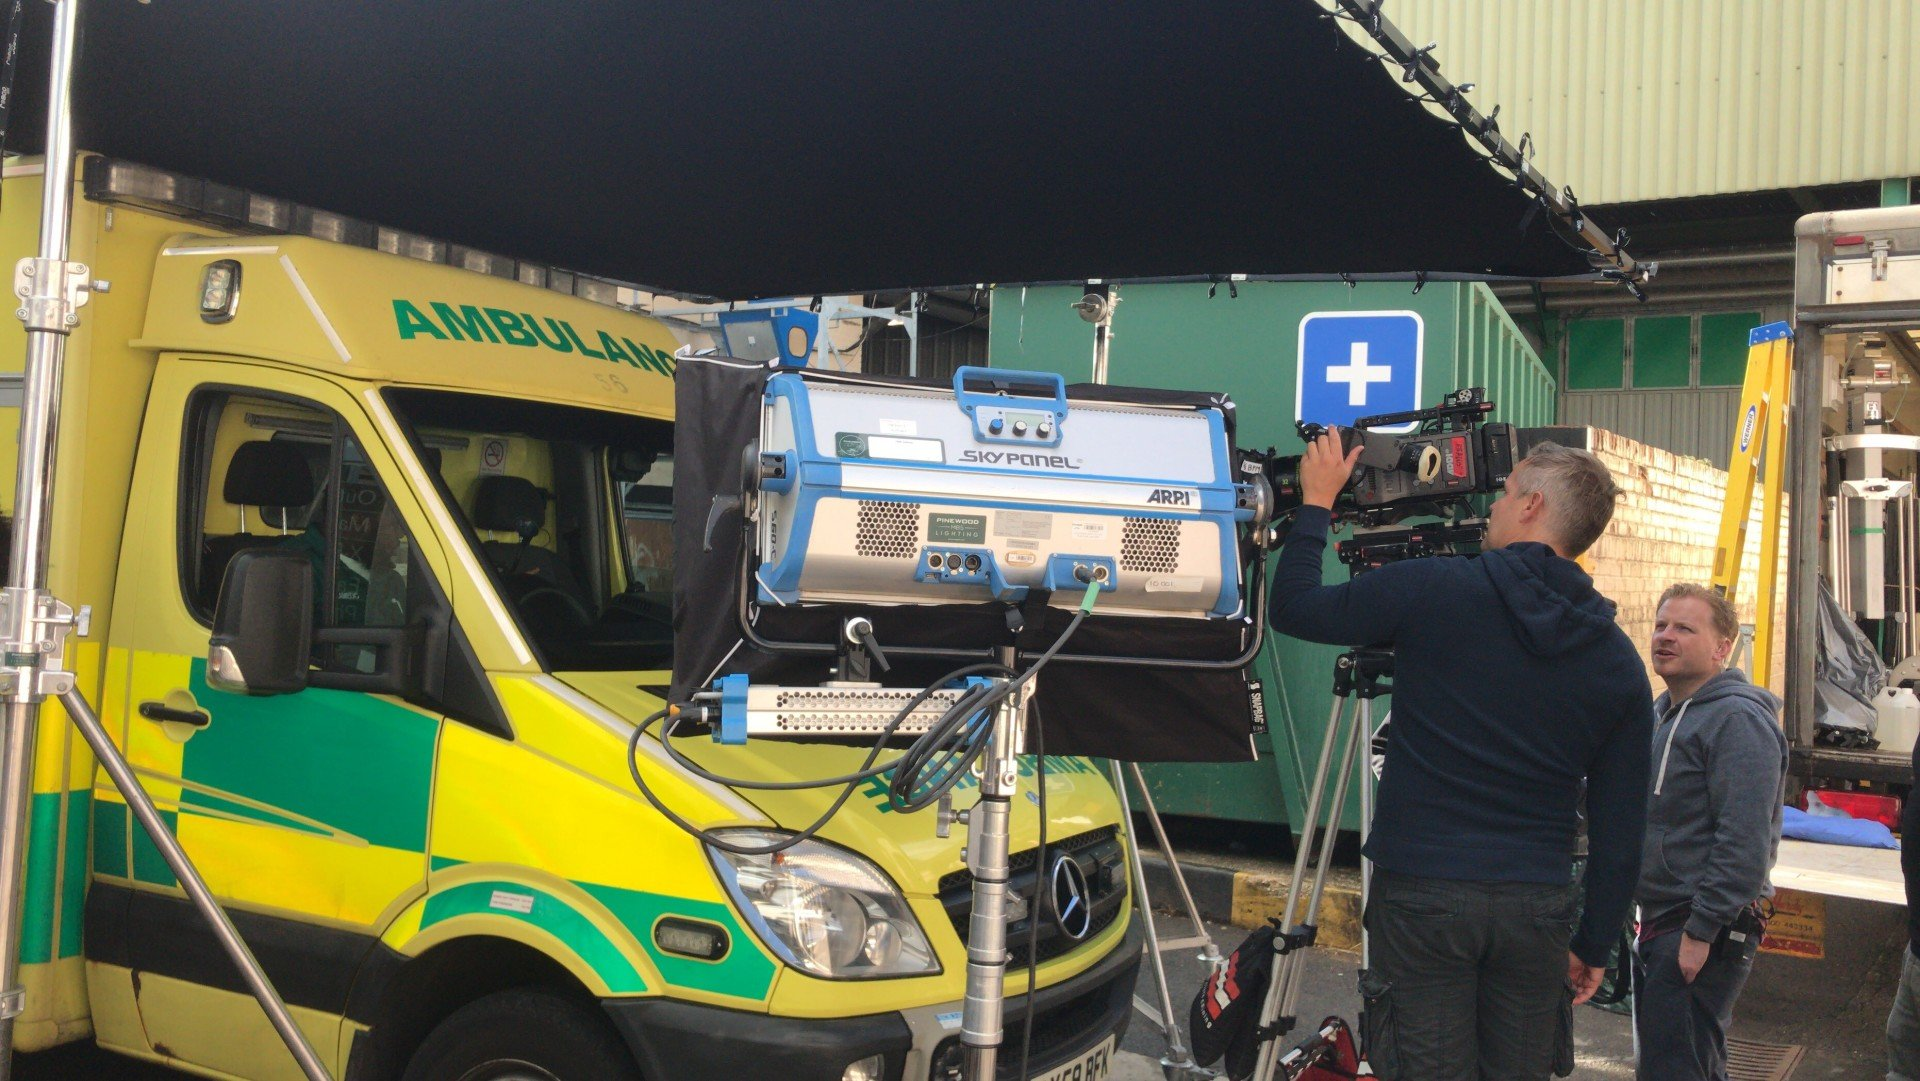 Ambulance being filmed